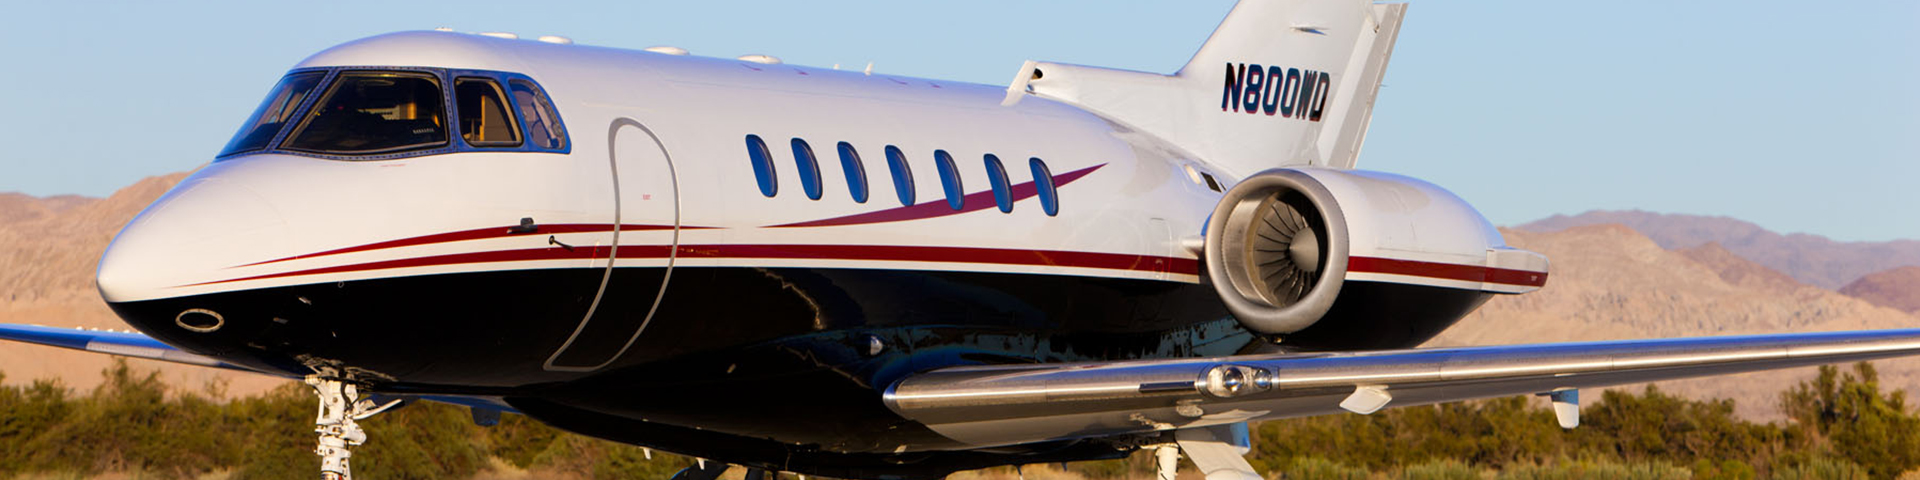 Hawker 10001 - Hawker 1000 Private Jet